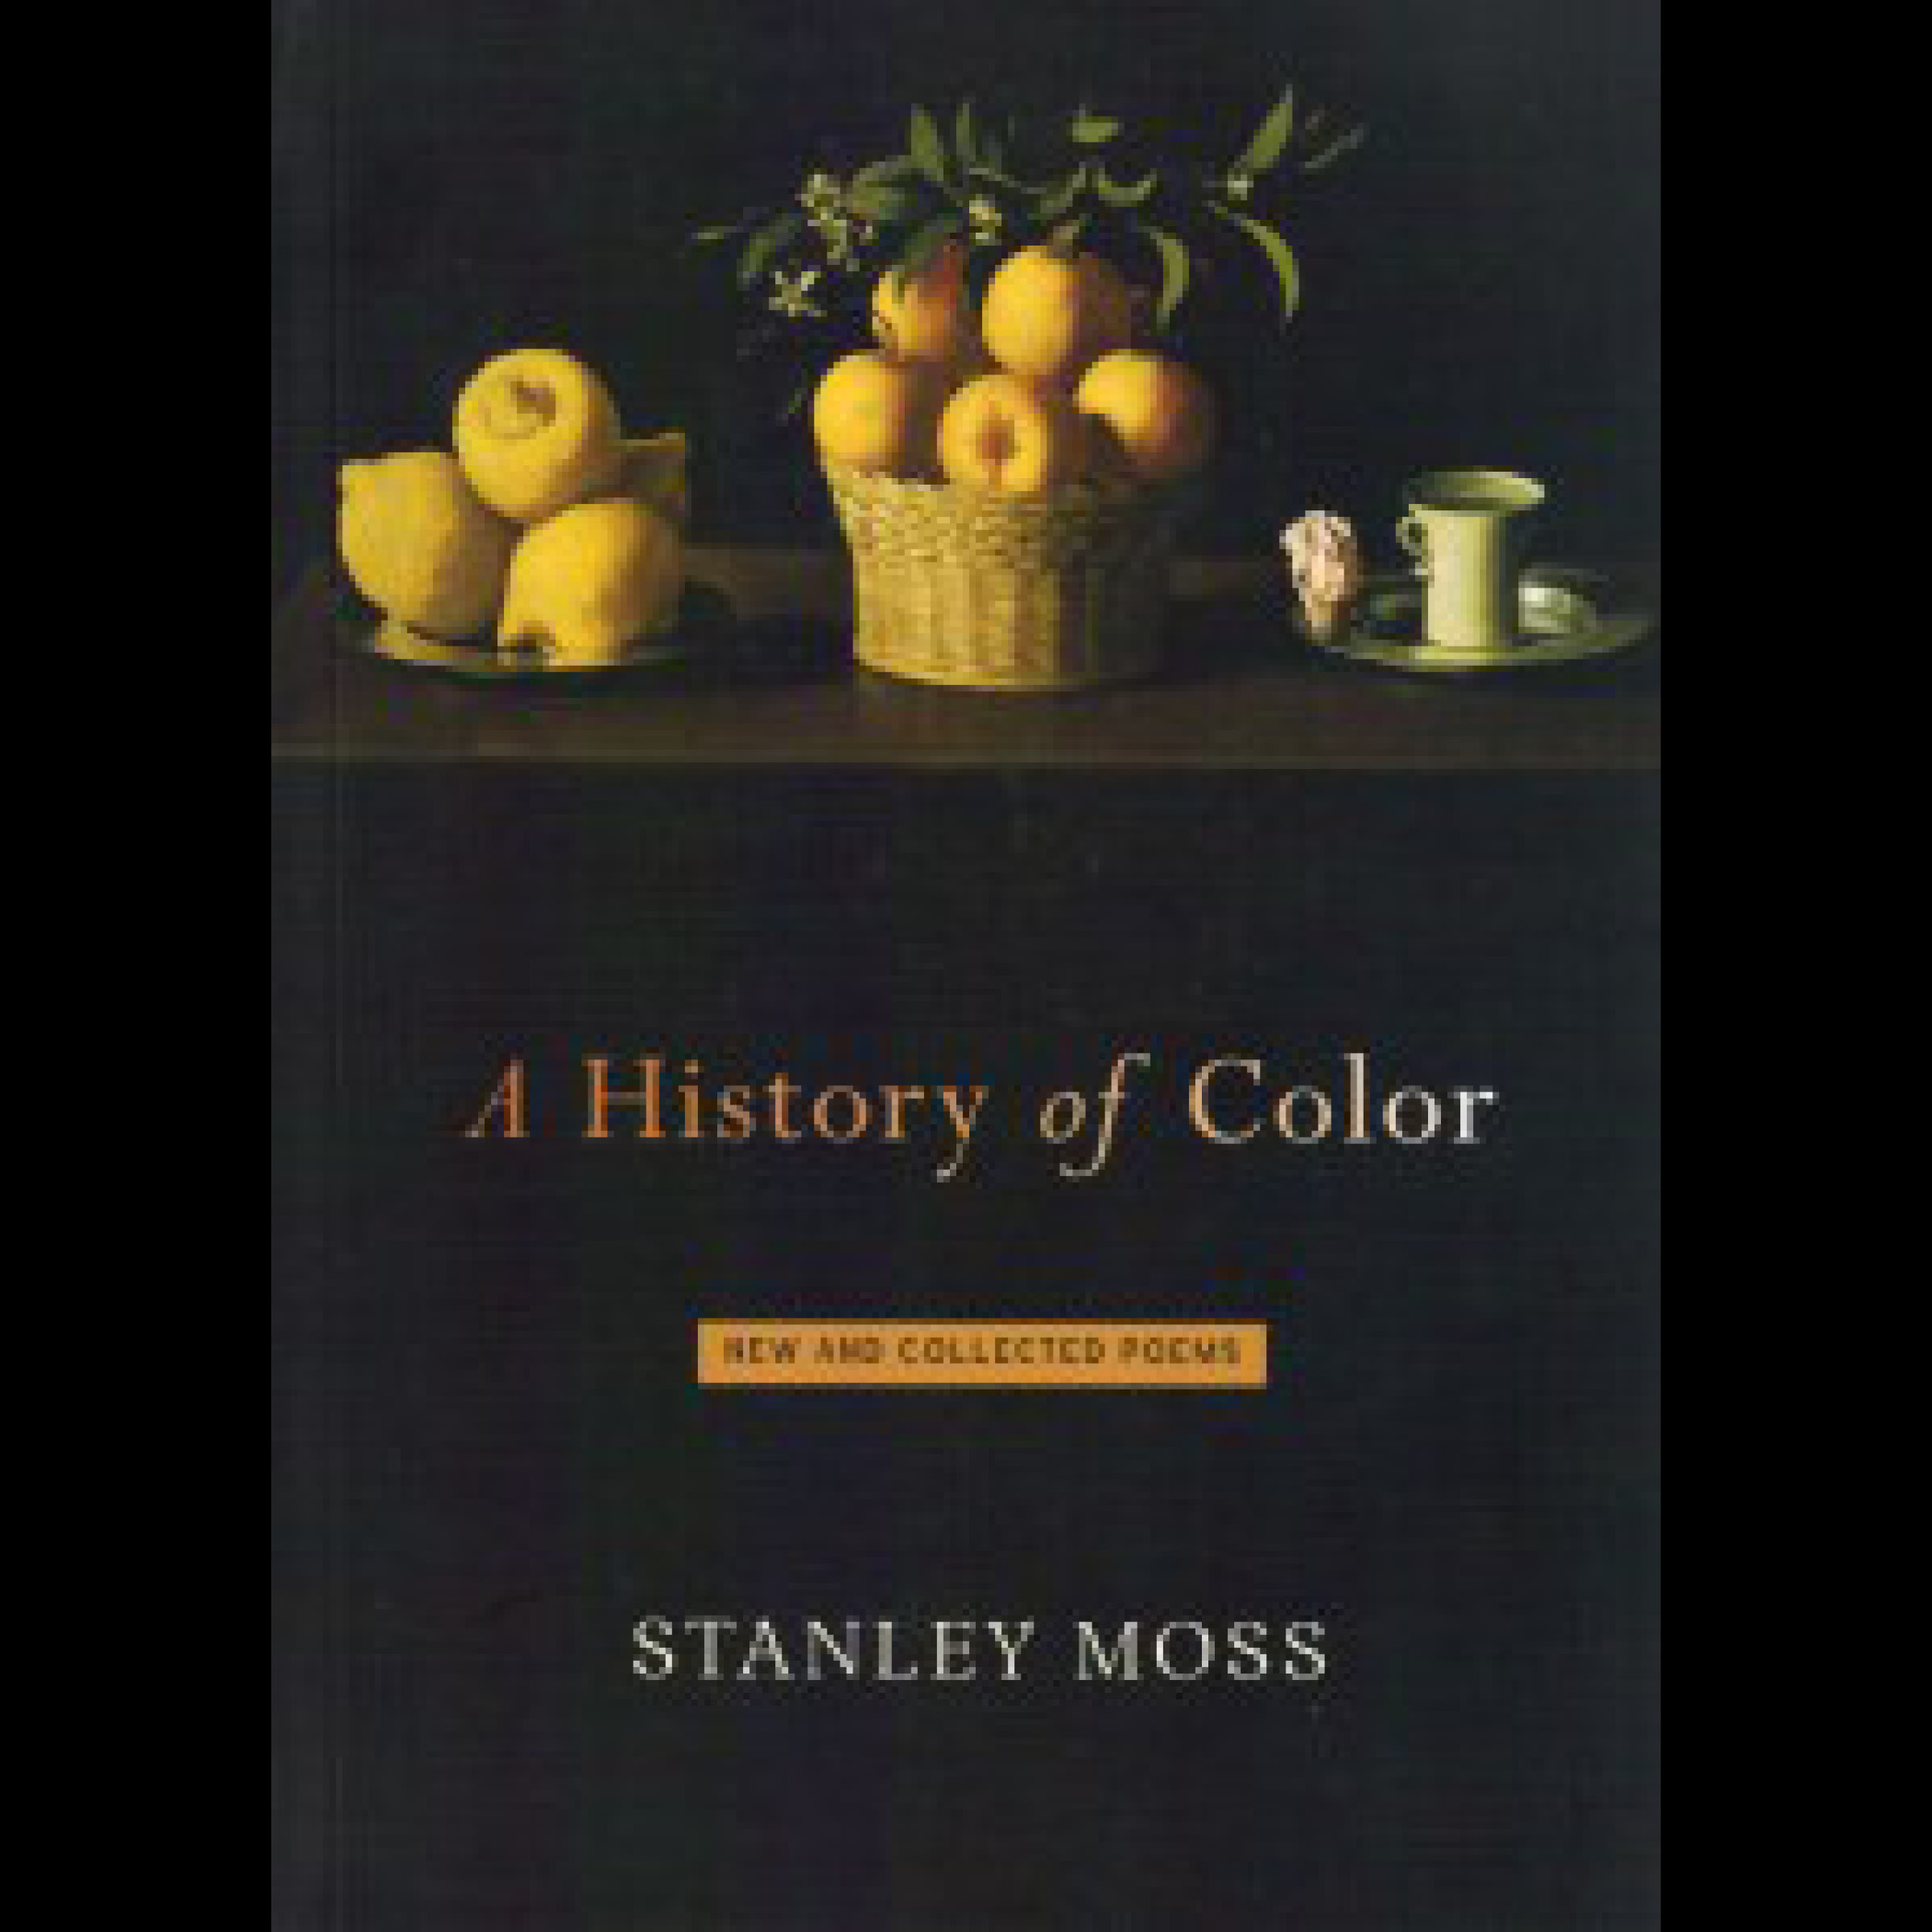 A History of Color (Seven Stories, 2003)